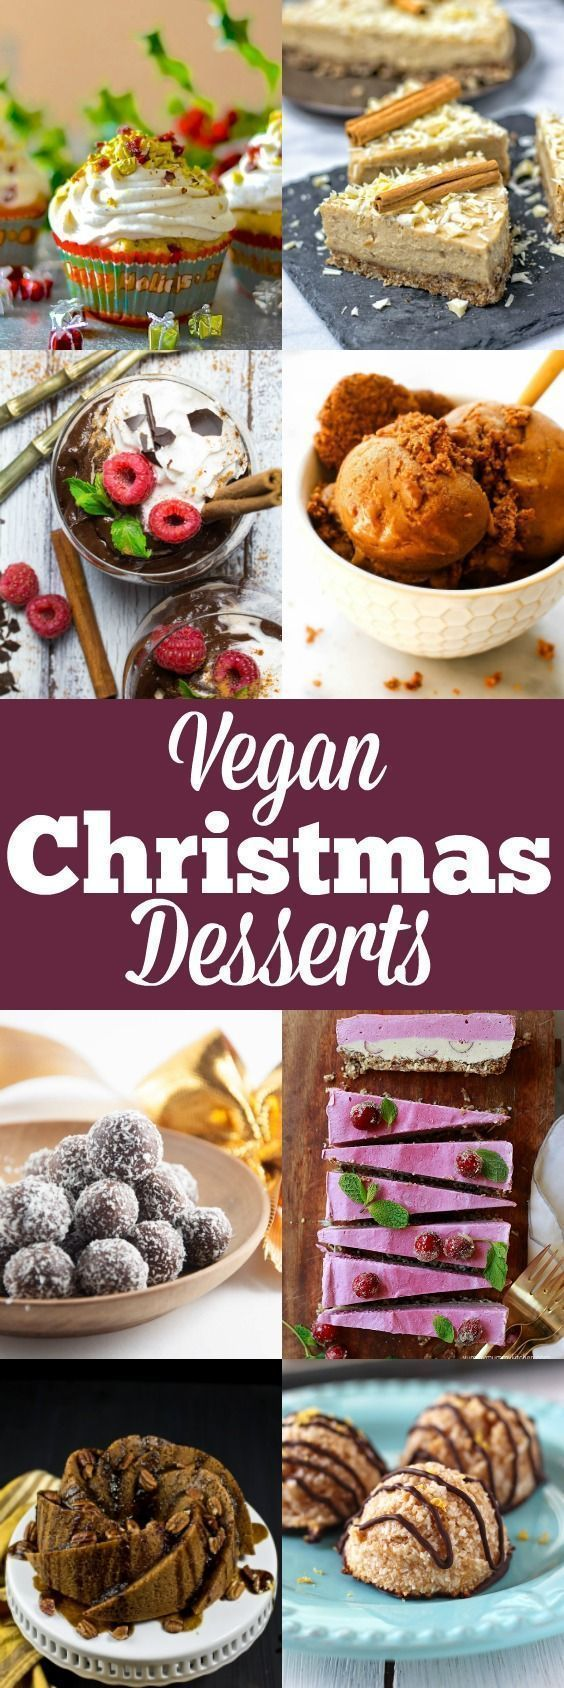 Are you looking for vegan desserts for Christmas? Look no further! I teamed up w…